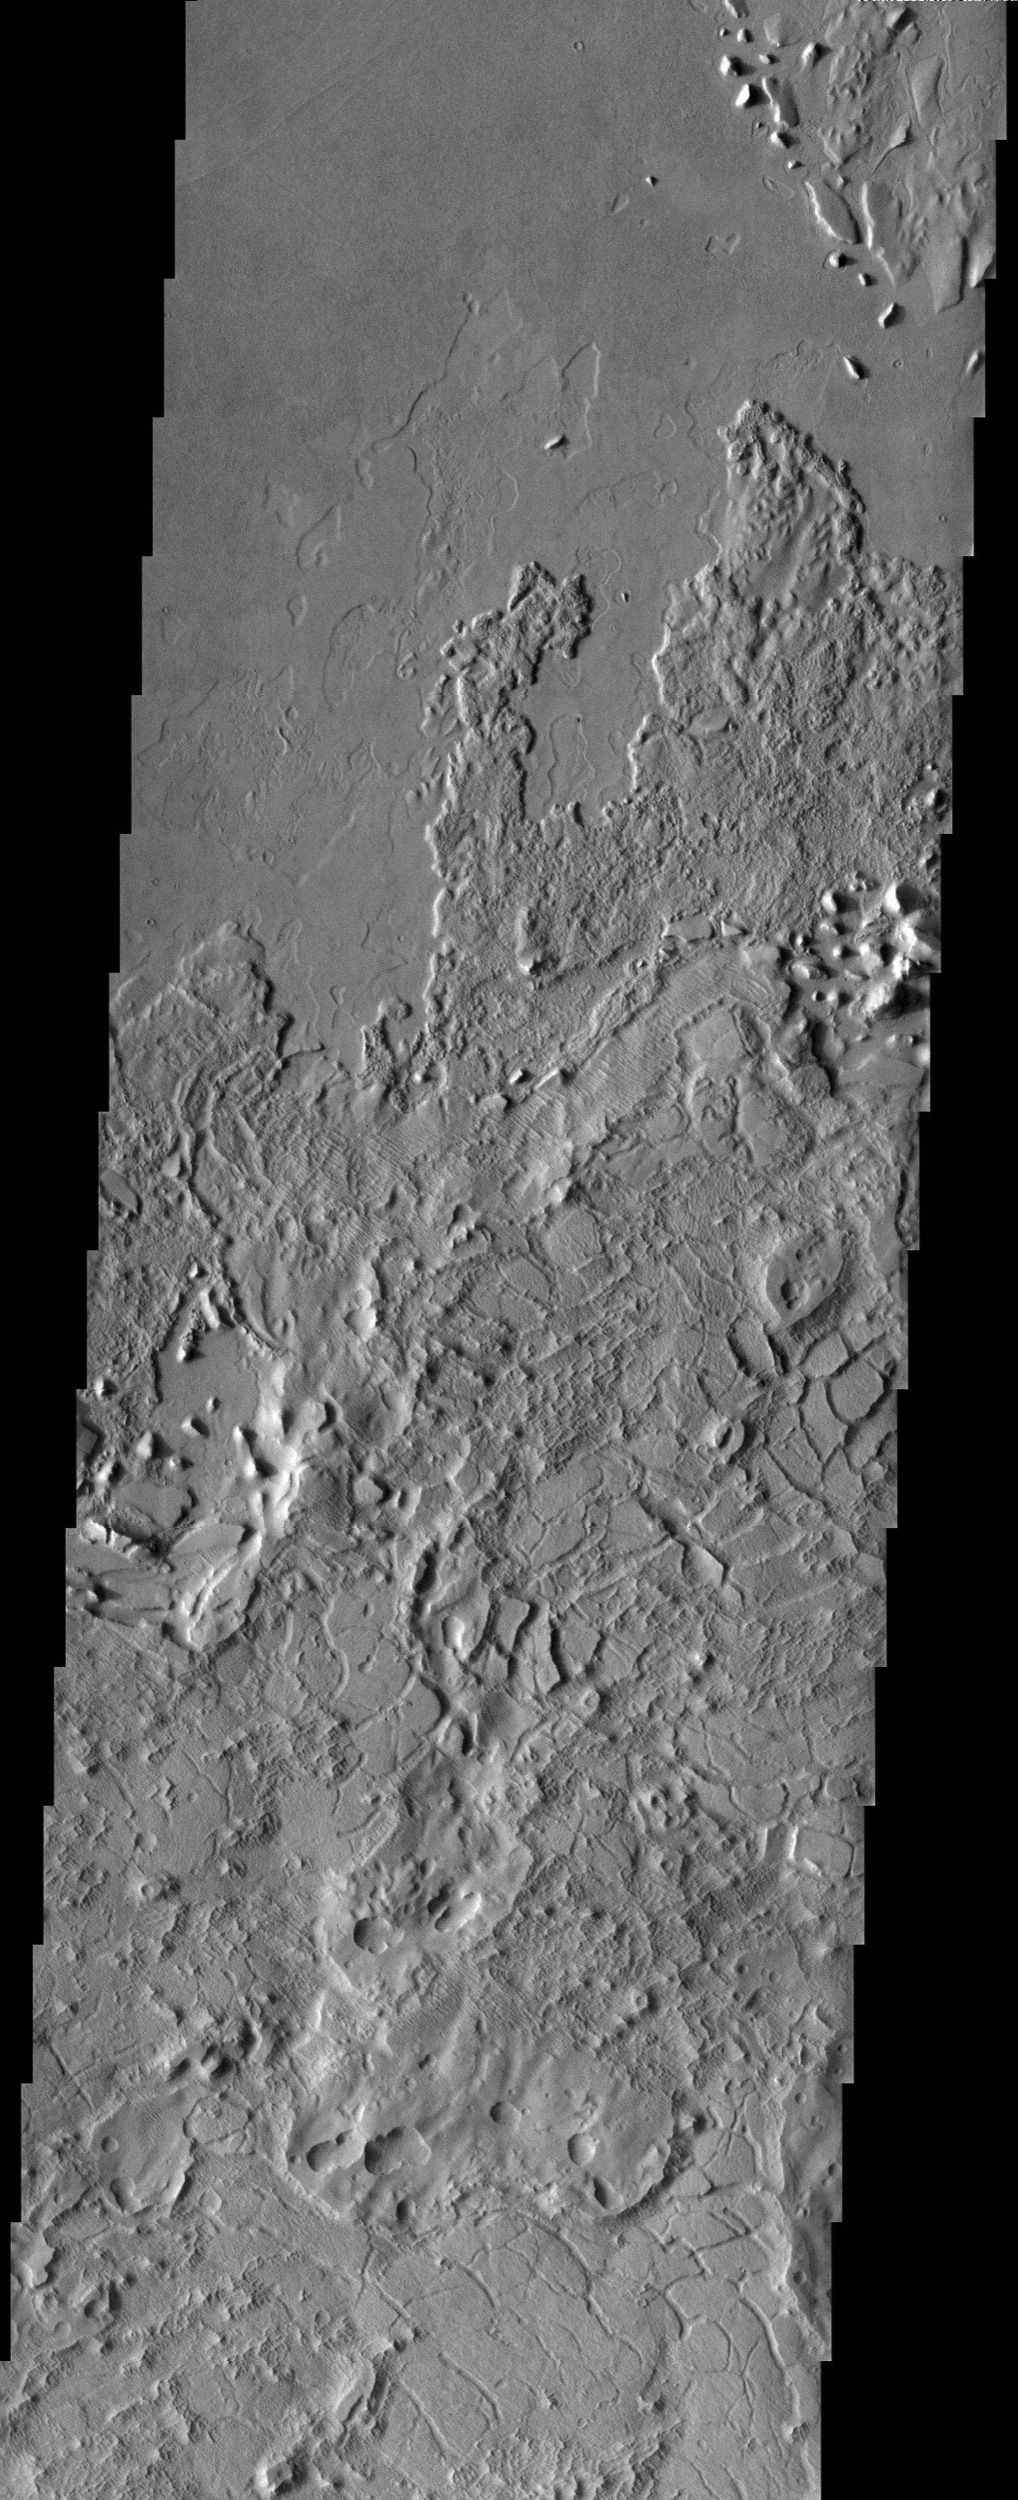 This image from NASA's Mars Odyssey spacecraft shows a crazy mixture of bizarre surface features in Lucus Planum.